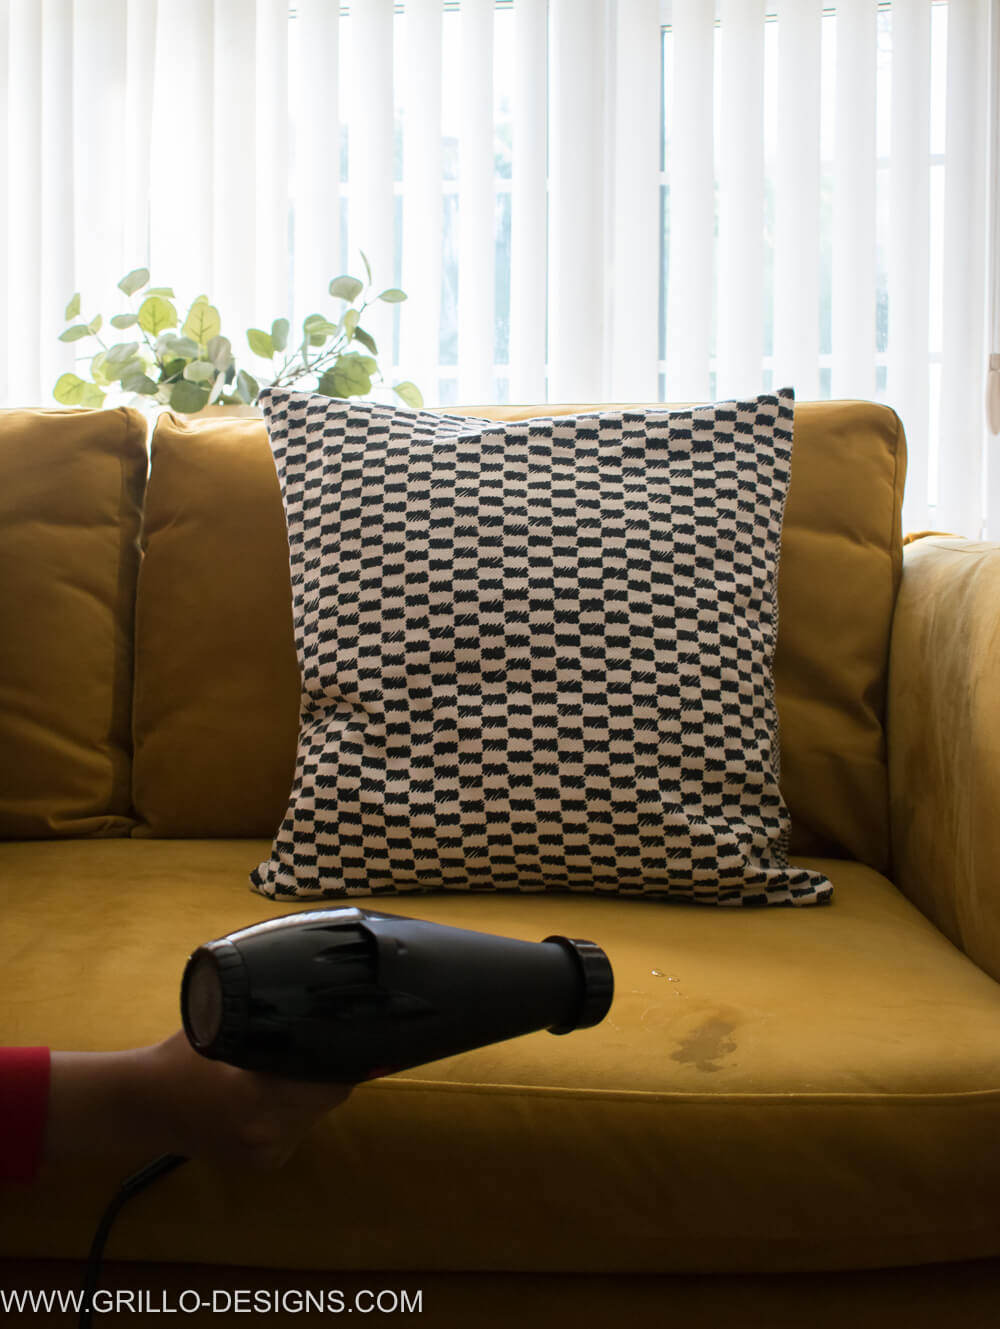 Use a hairdryer to dry stains on a velvet sofa / grillo designs